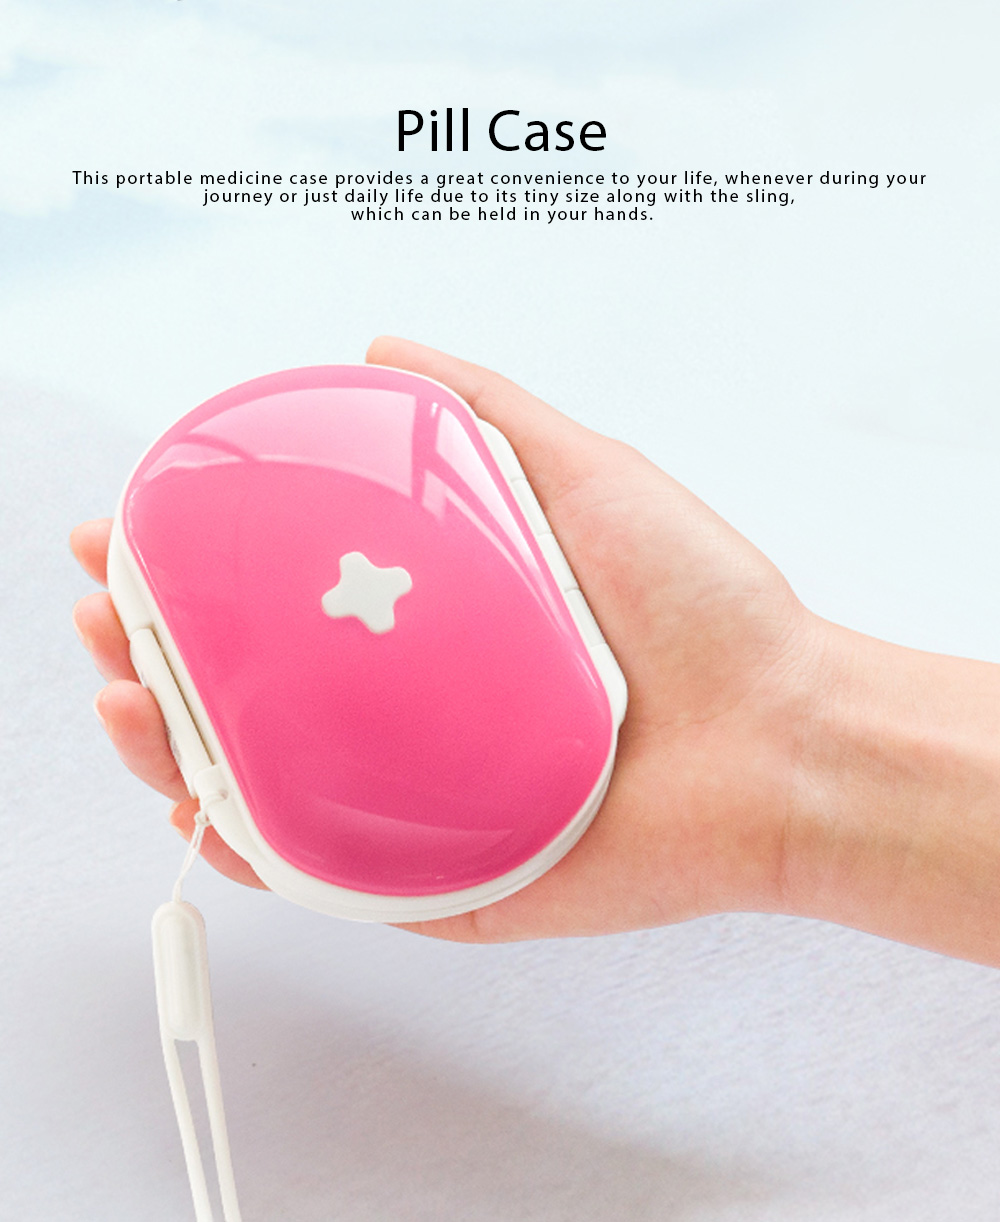 One Week Pill Box, Nontoxic PP Material Portable Medicine Container with Portable Strap Weekly Pill Case 0